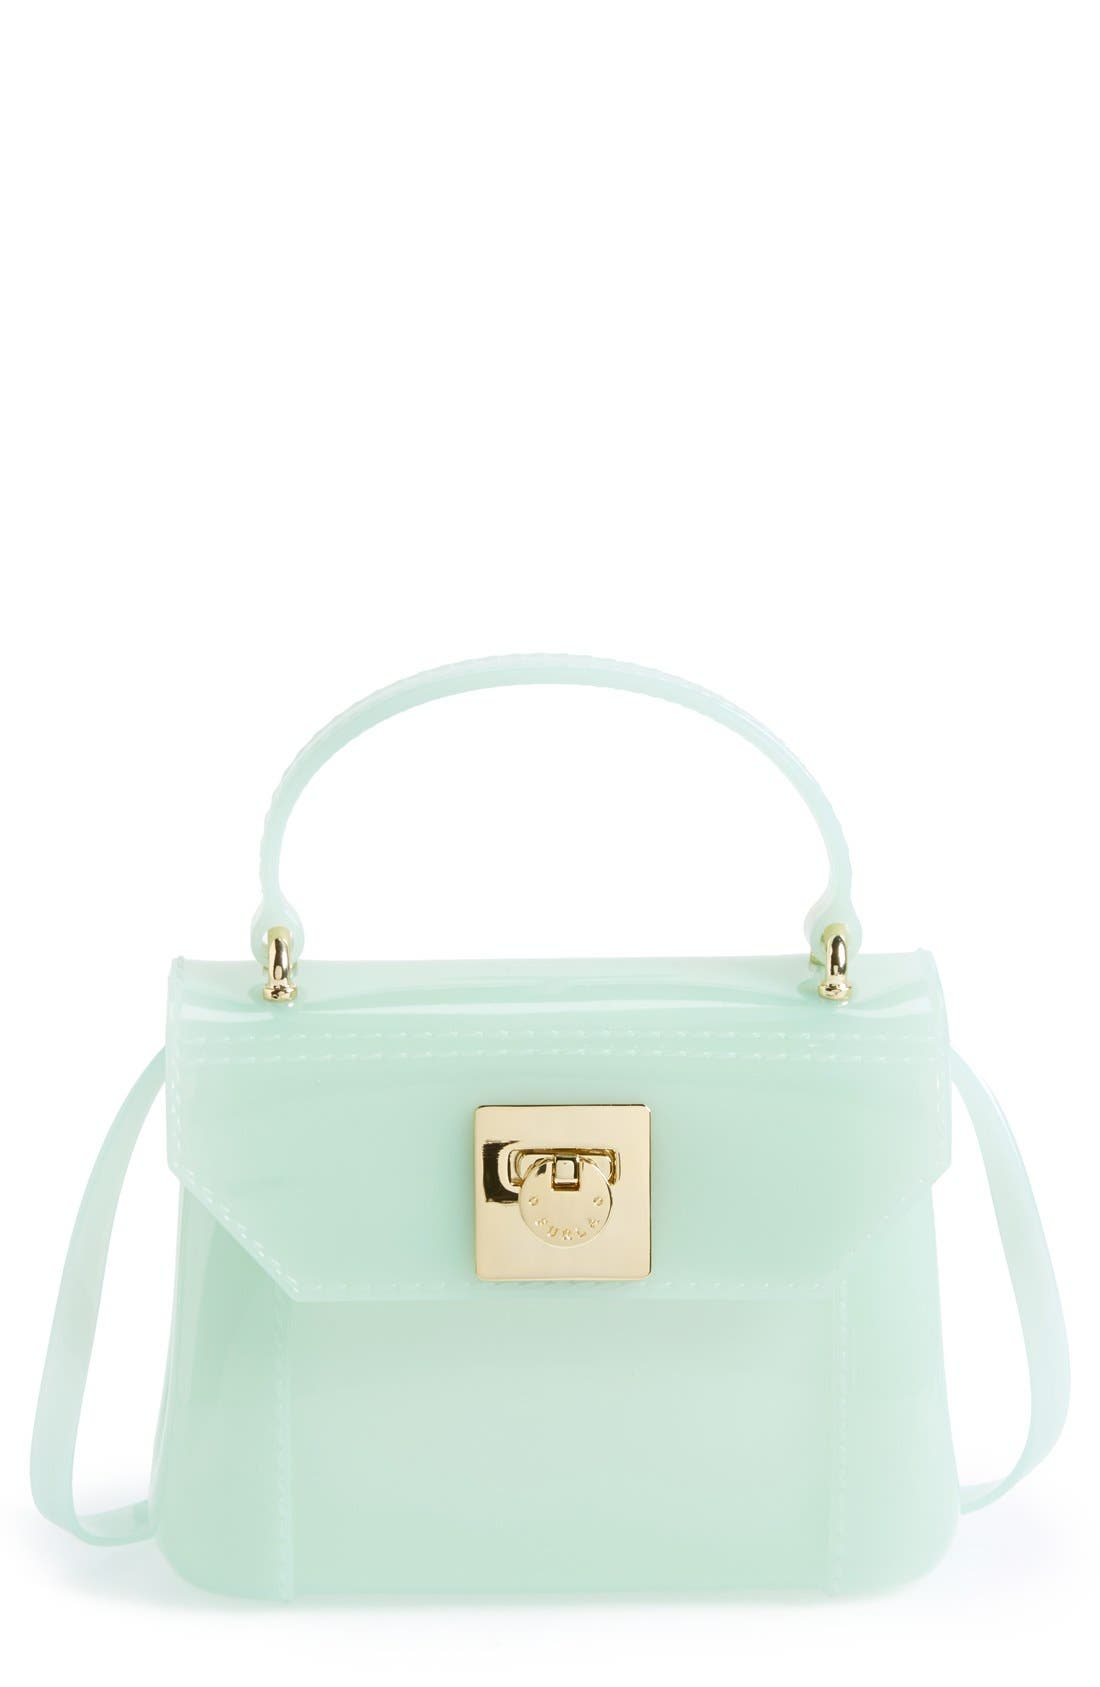 Main Image - Furla 'Candy - Mini' Top Handle Crossbody Bag